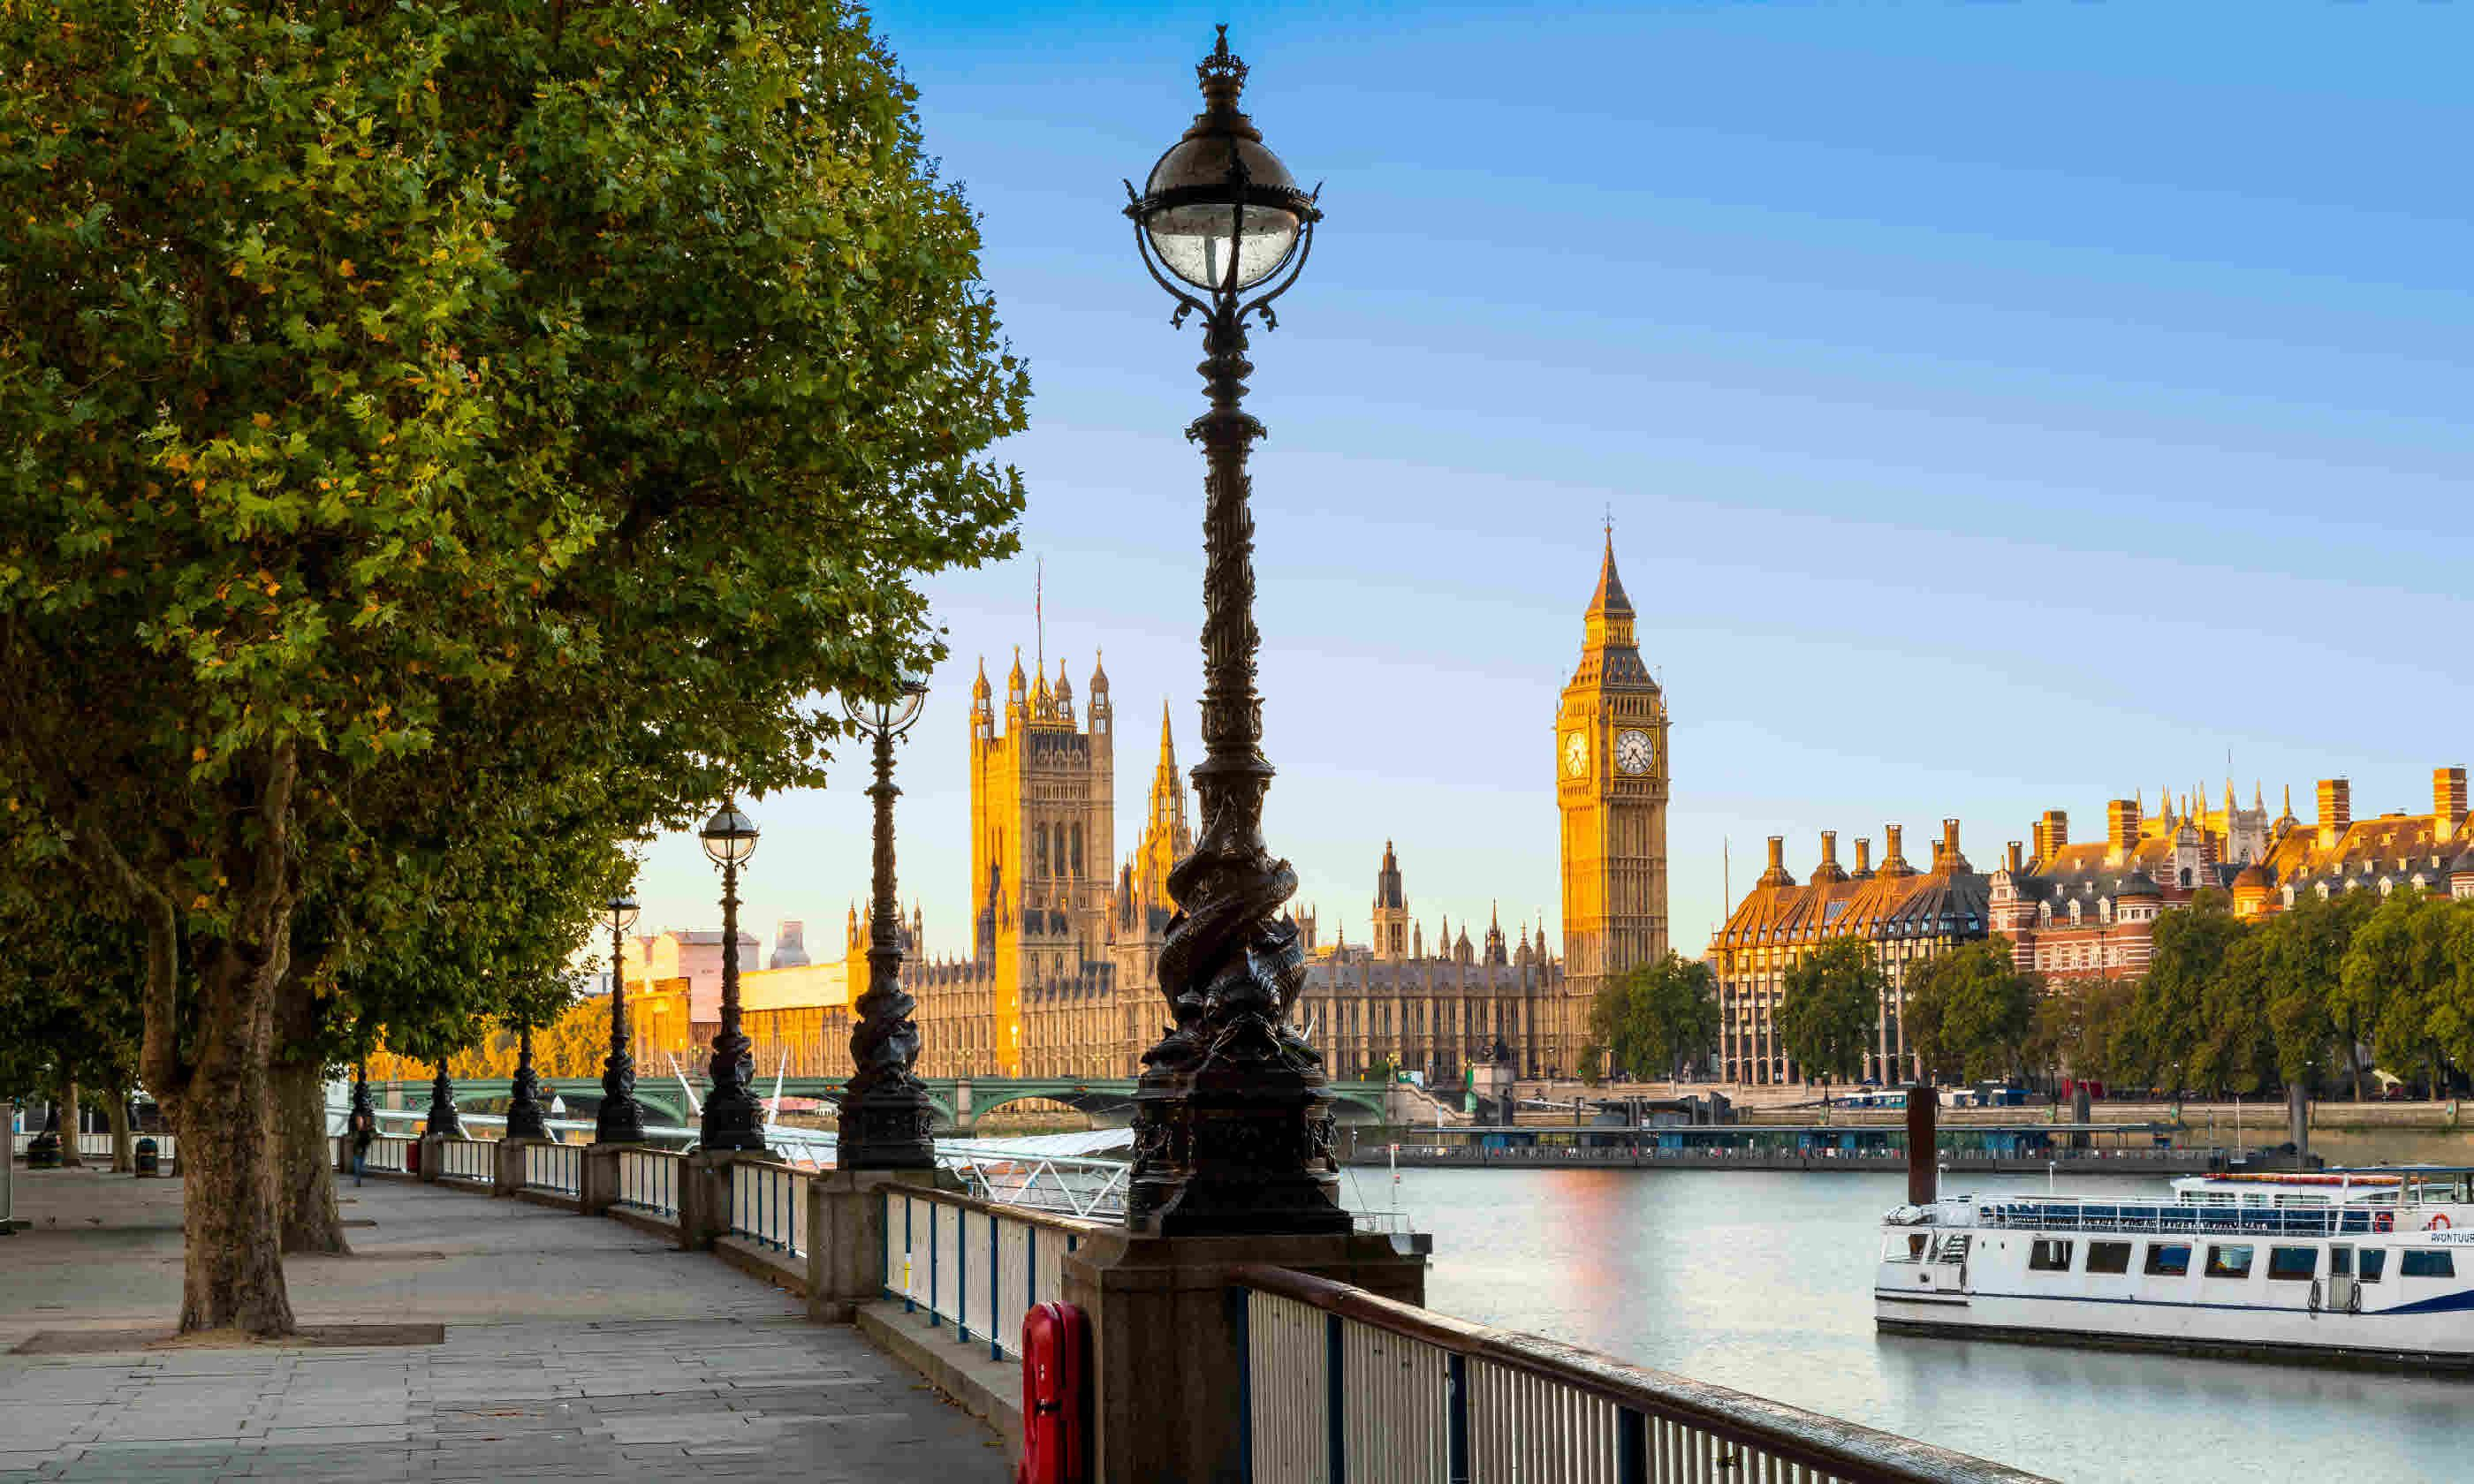 South Bank of River Thames with Big Ben and Palace of Westminster (Shutterstock)